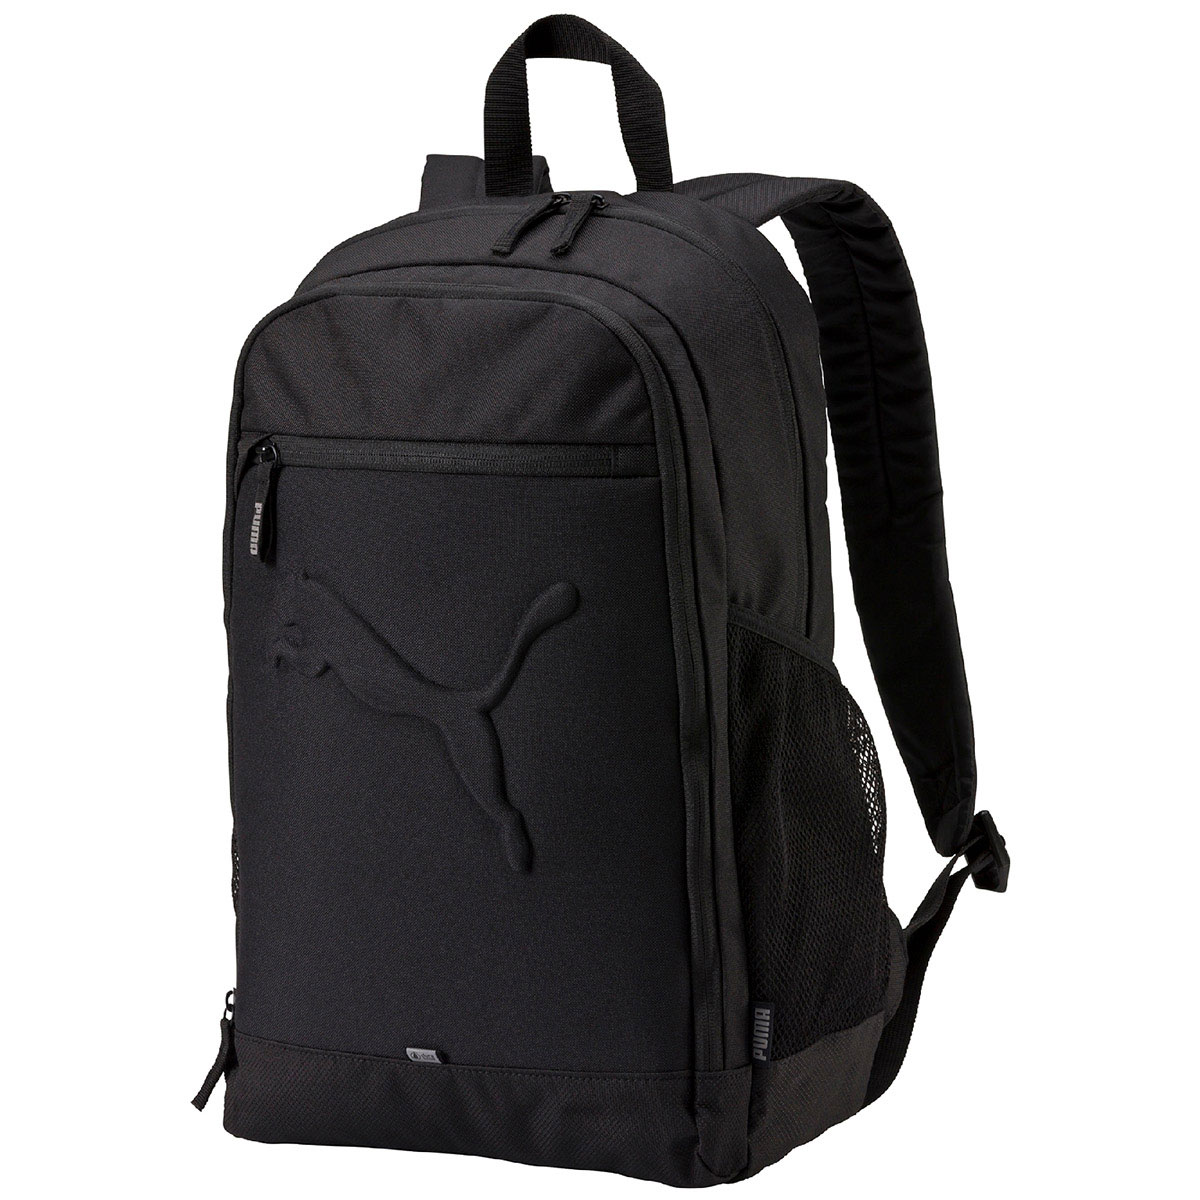 images of puma bags